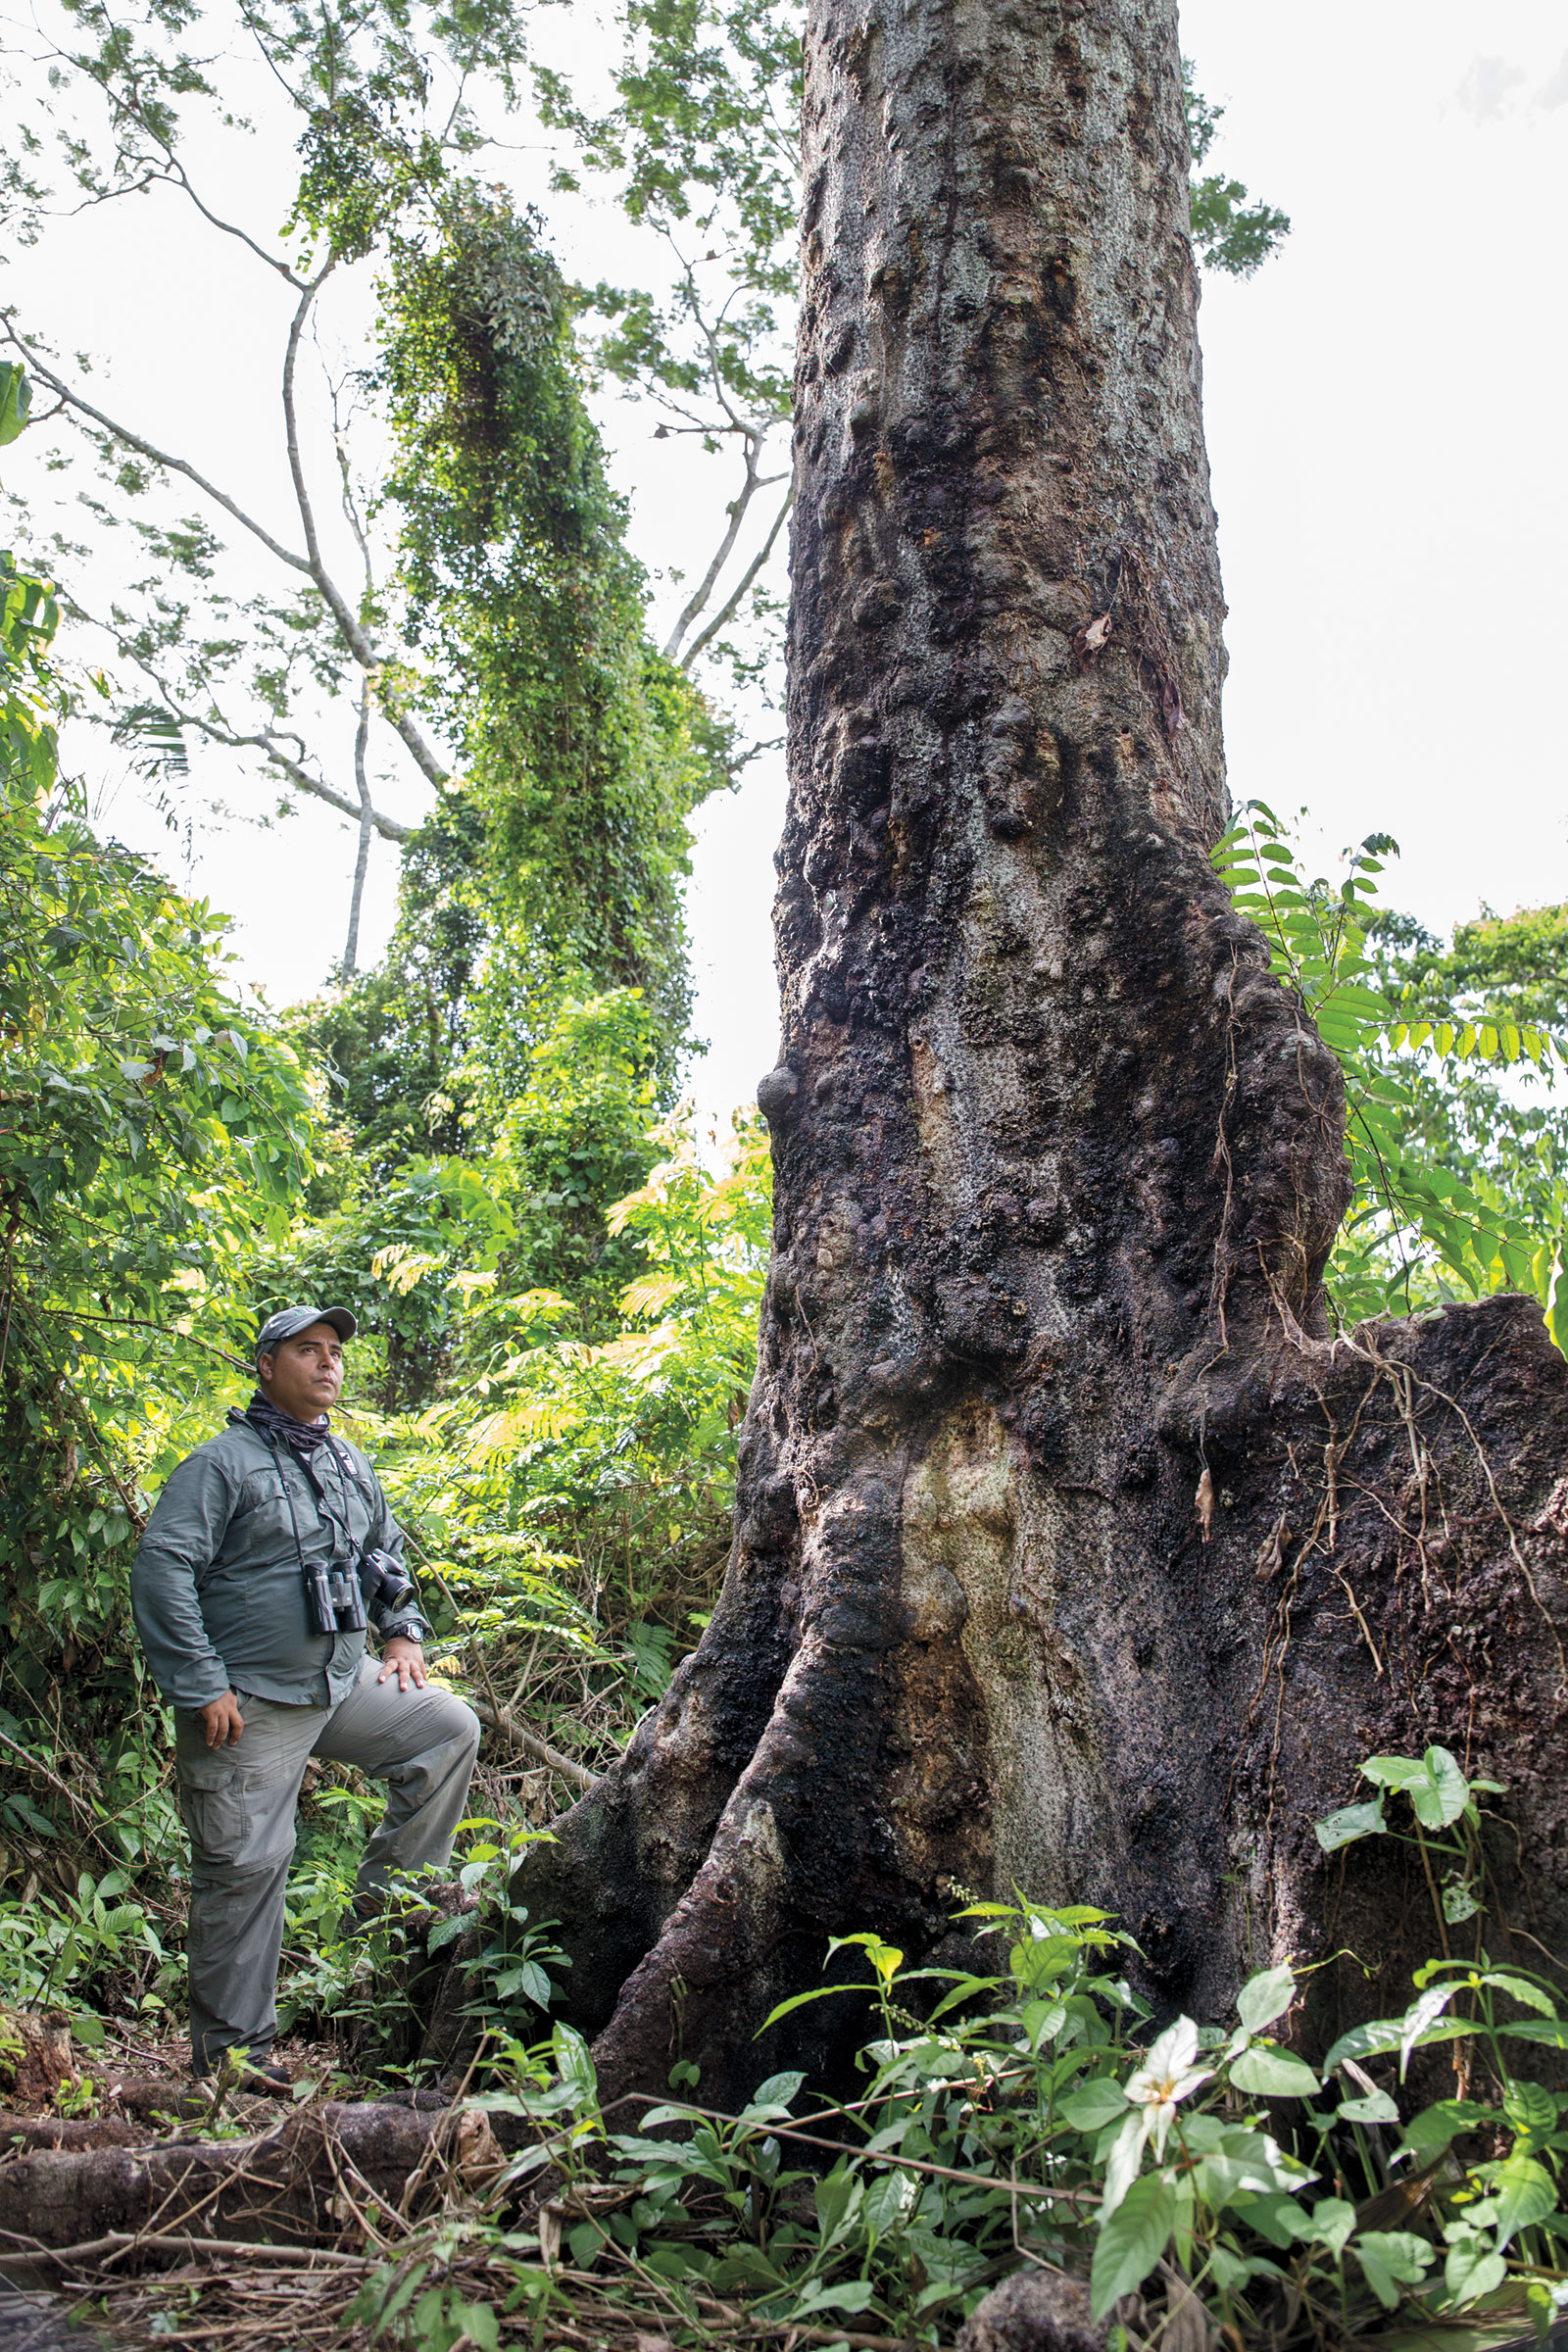 Roni Martinez, one of the founders of Scarlet Six Biomonitoring Team, stands next to a quamwood tree heavily pocked with the scars from poachers spiked boots. Camilla Cerea/Audubon